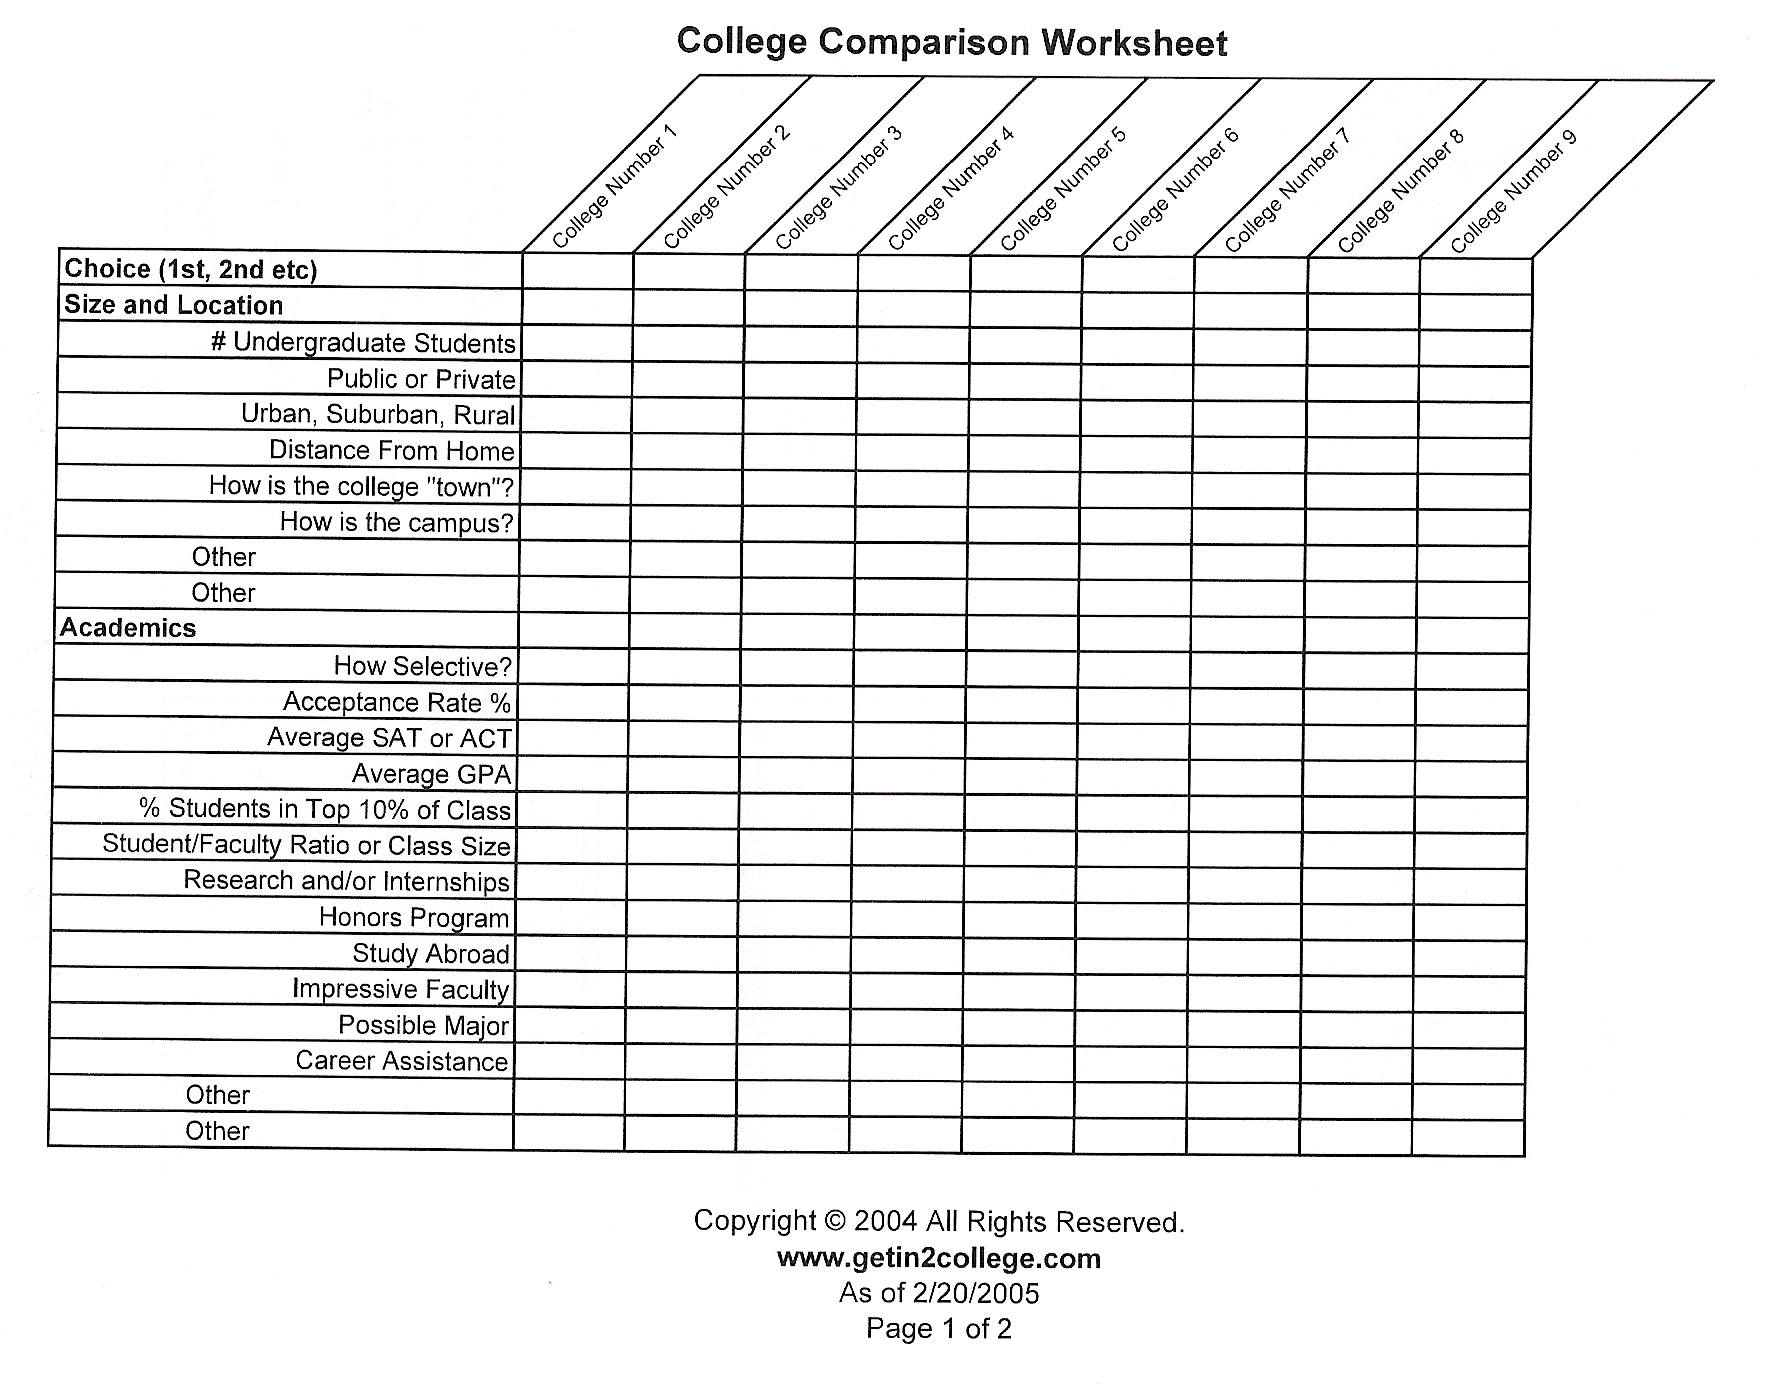 Printables College Comparison Worksheet printables college comparison worksheet safarmediapps worksheets planning guidance counseling reedley high school jpg